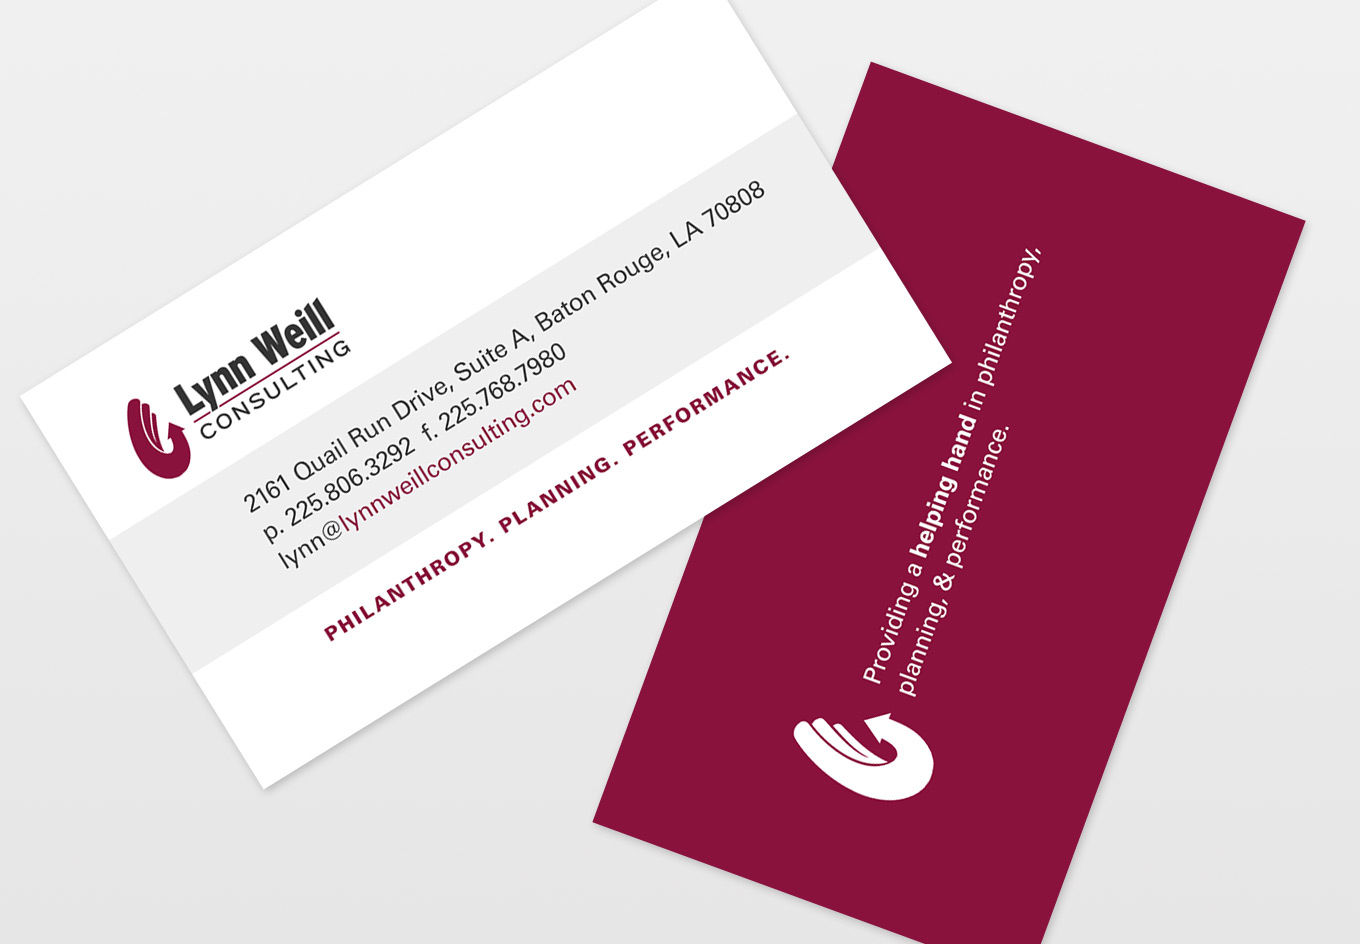 Lynn Weill Consulting Business Cards